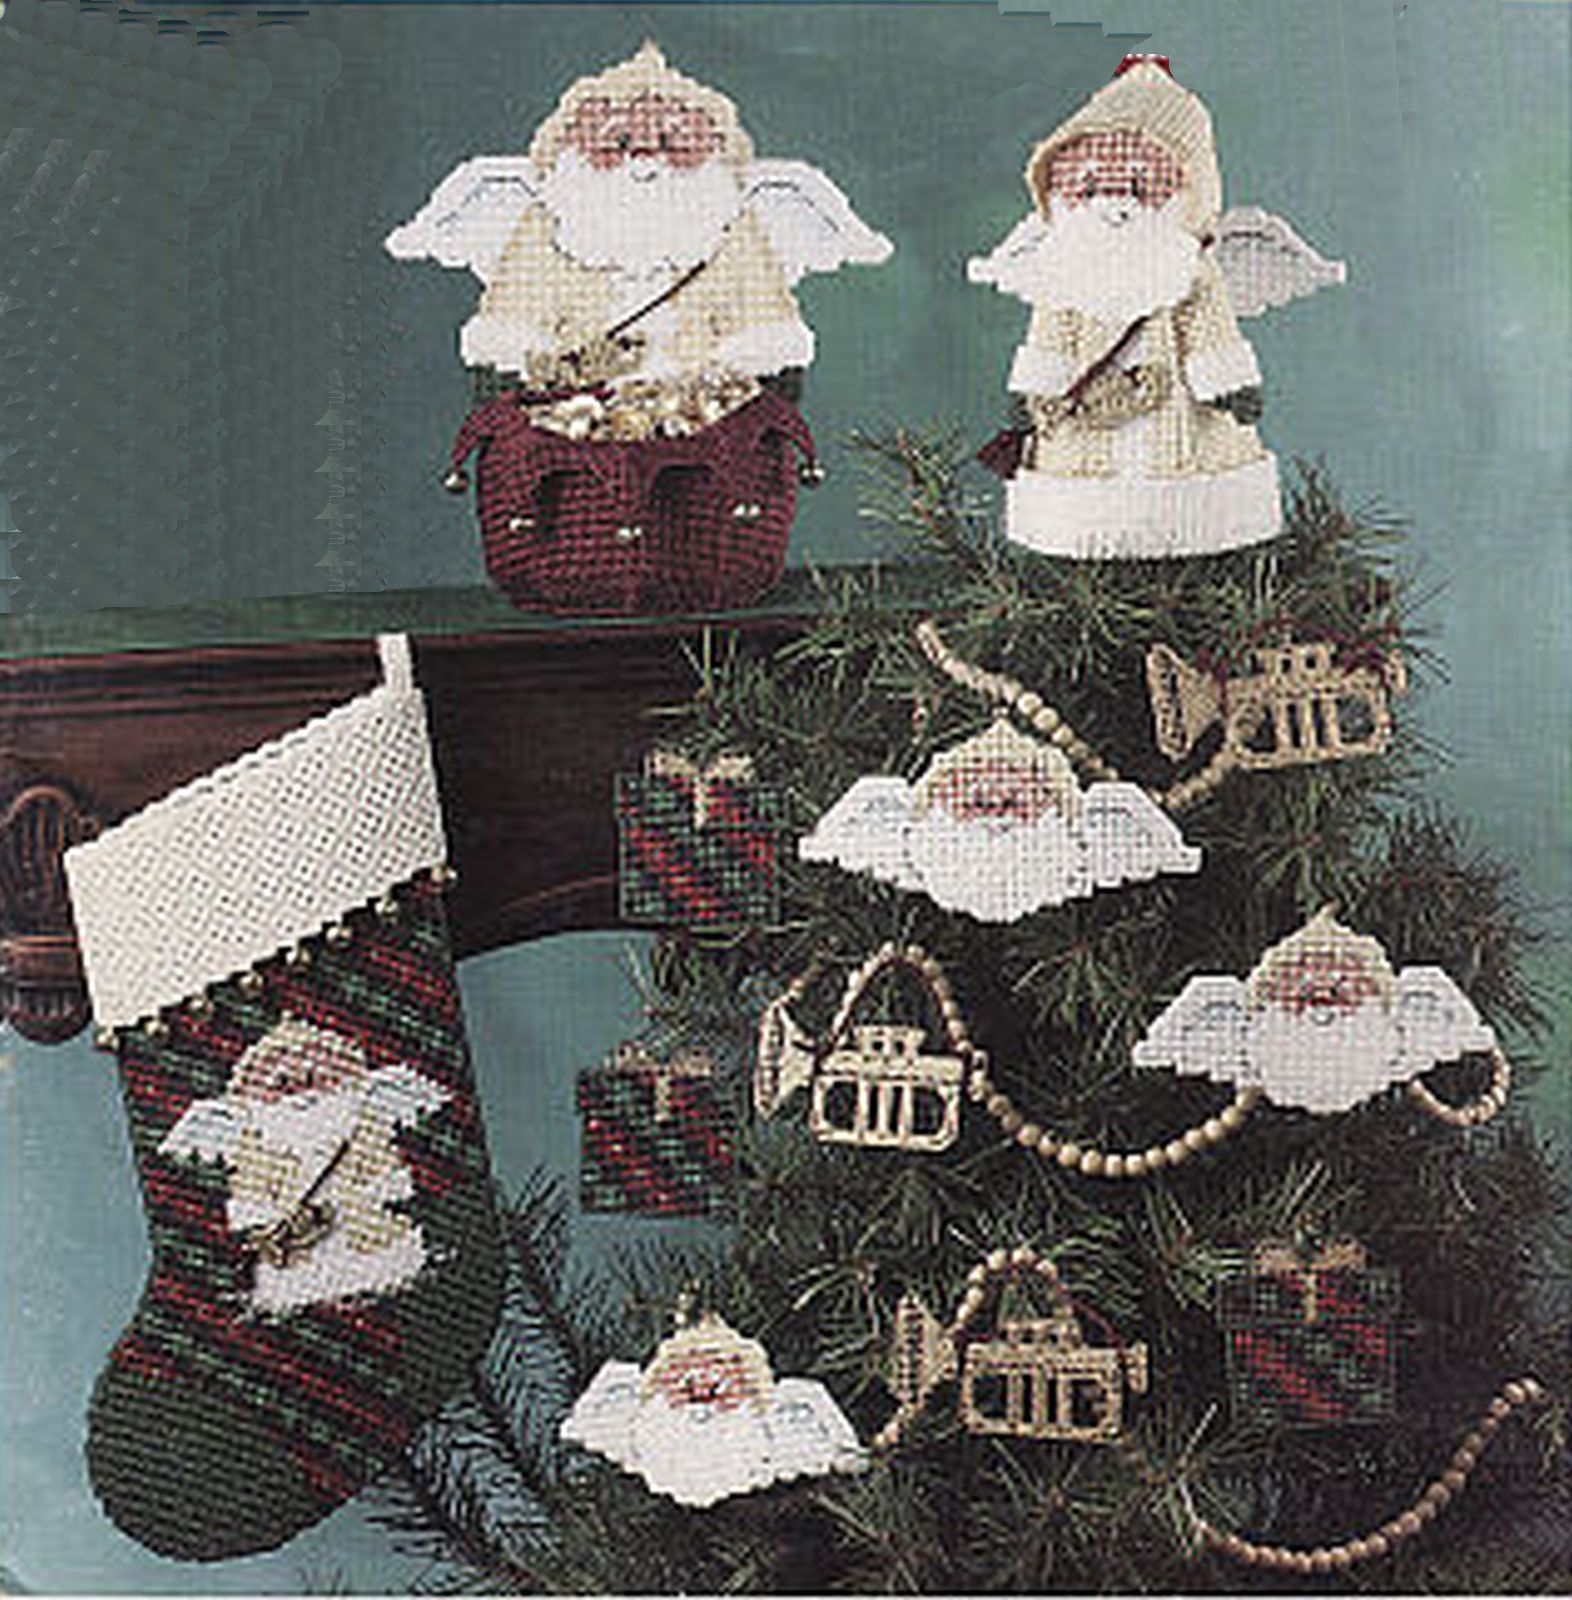 Primary image for Plastic Canvas Christmas Stocking Sleigh Musical Santa Angels Ornament Pattern